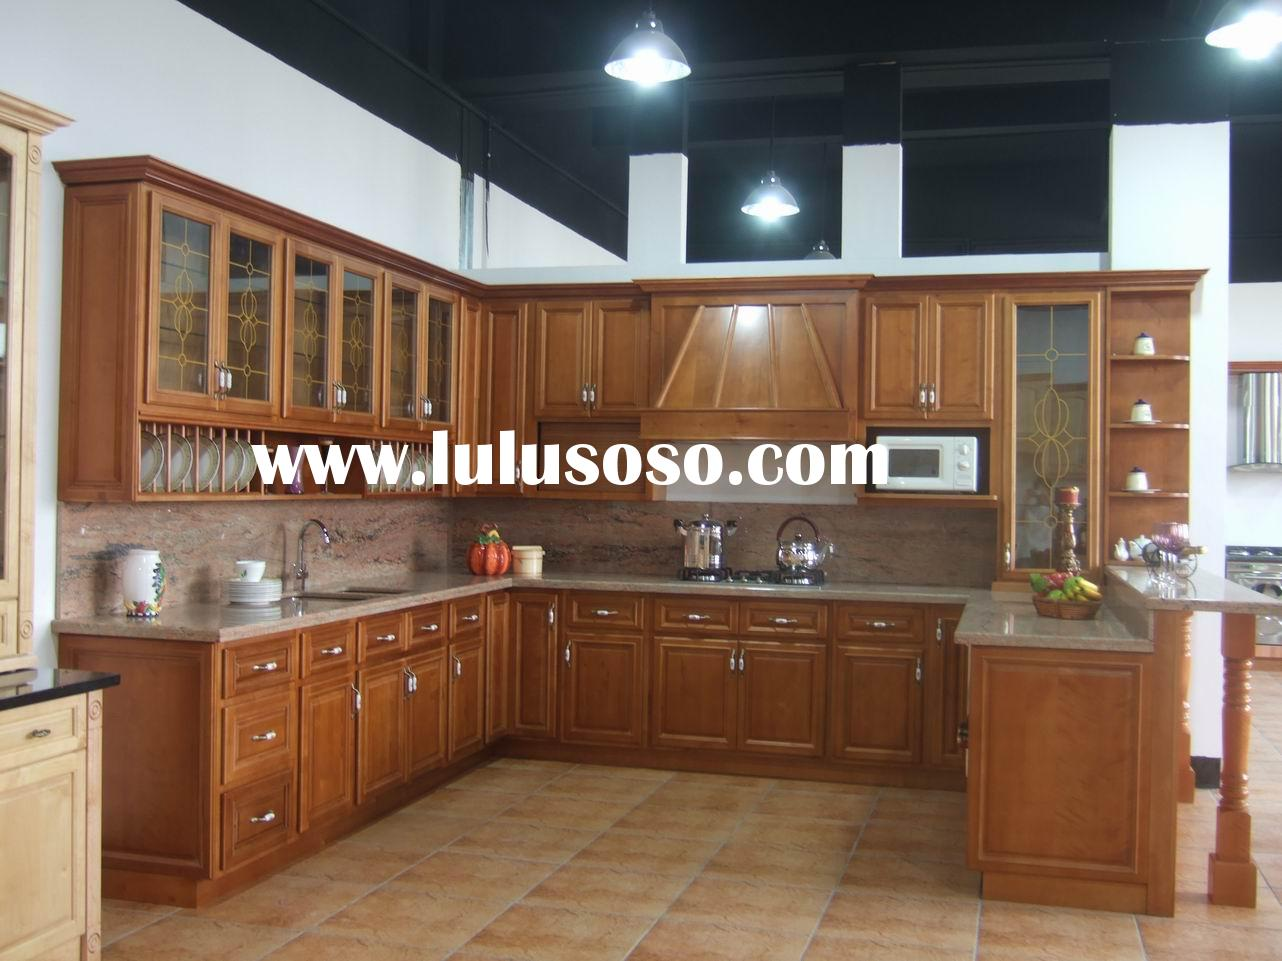 wooden kitchen furnitures, kitchen furniture set